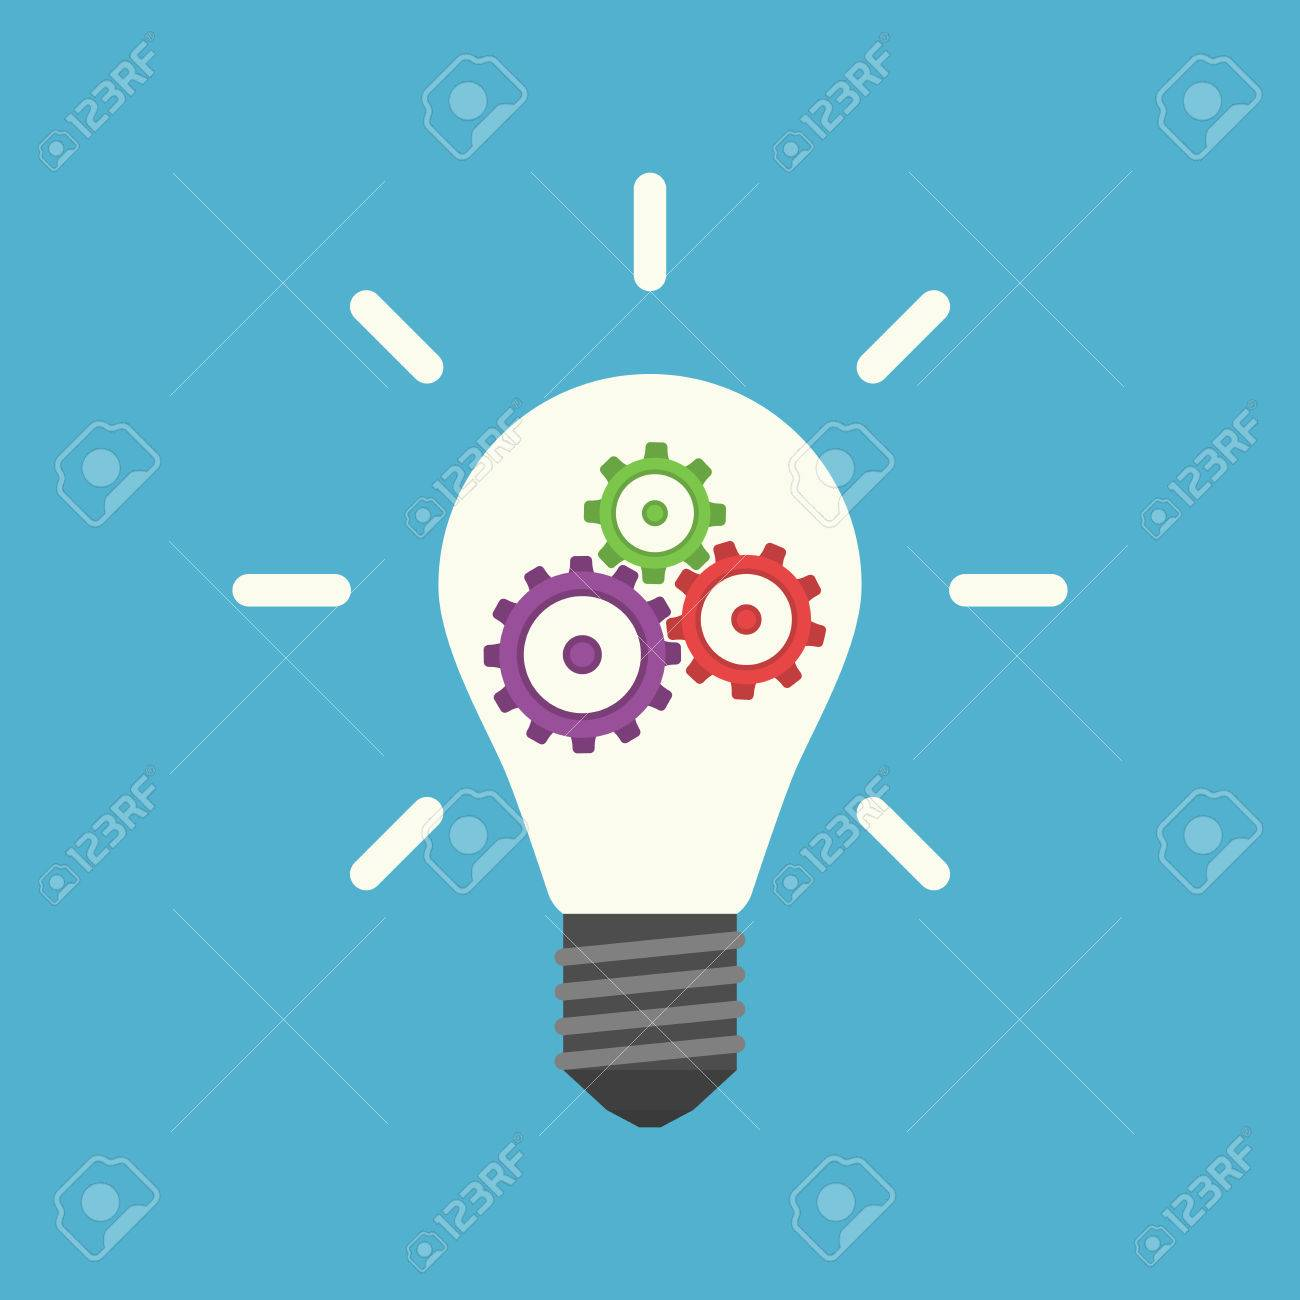 Light Bulb With Colorful Gears Inside Isolated On Blue Background 1300x1300